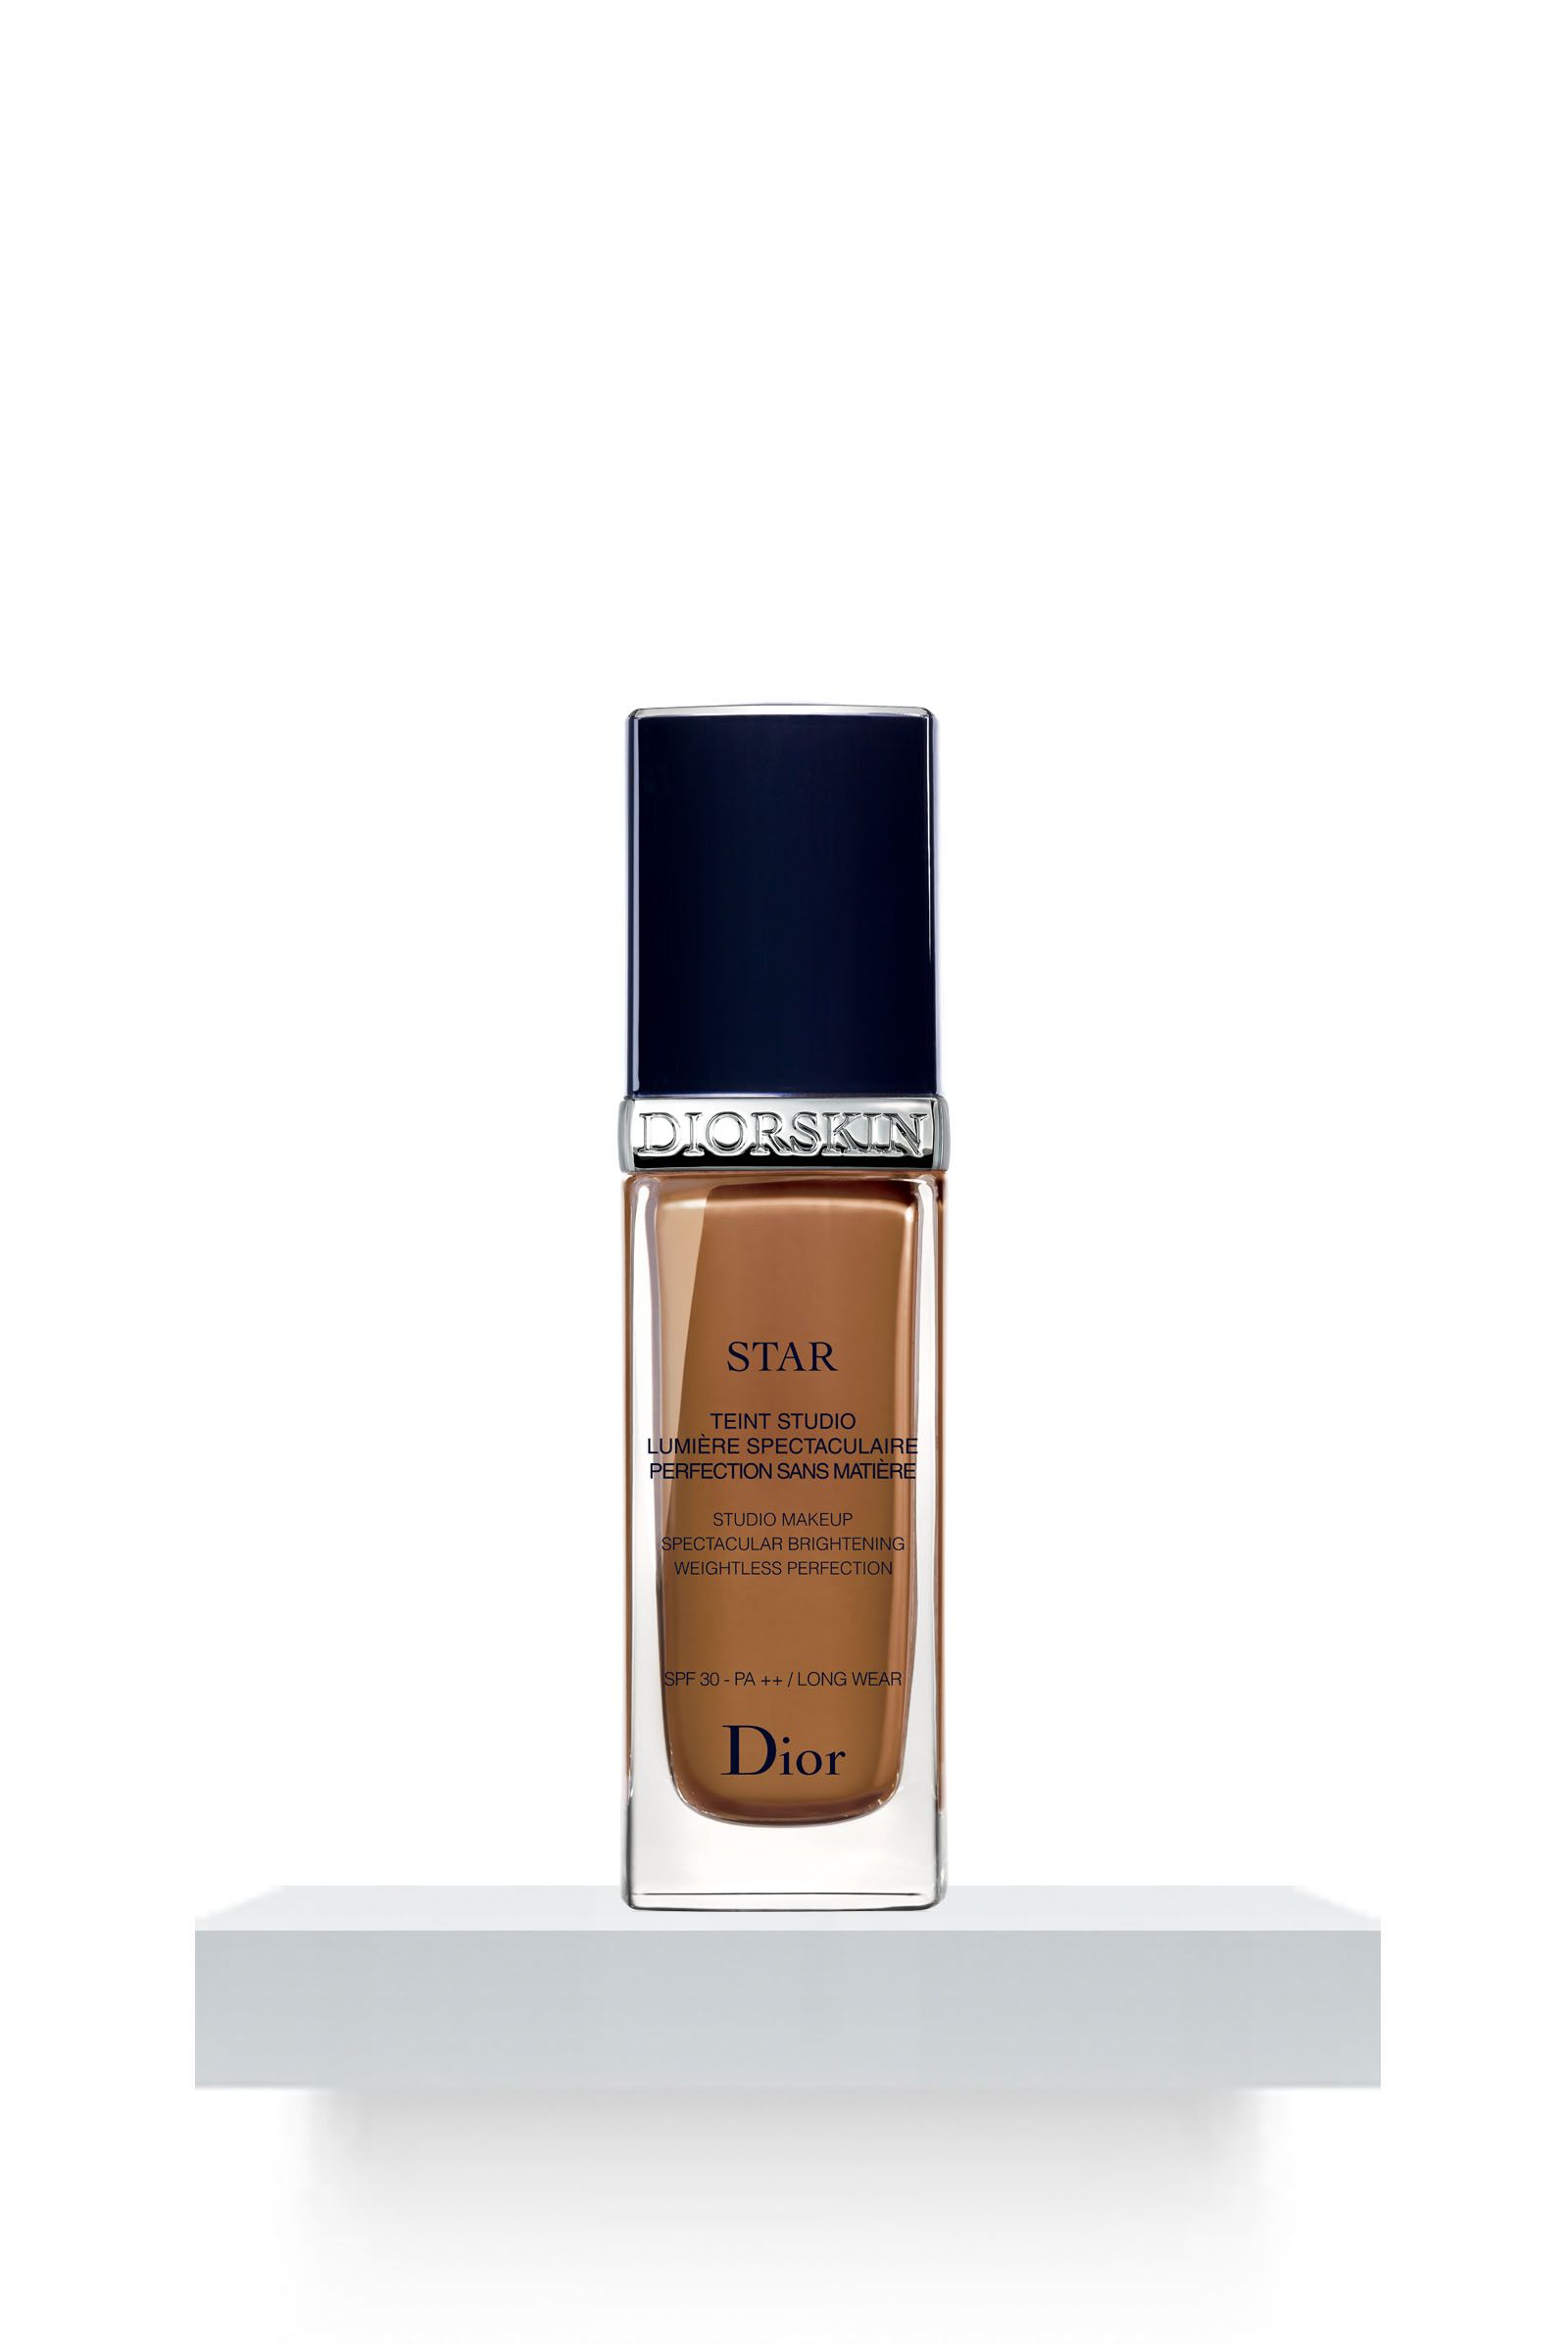 Dior Diorskin Star Foundation 30ml Dark Brown 070